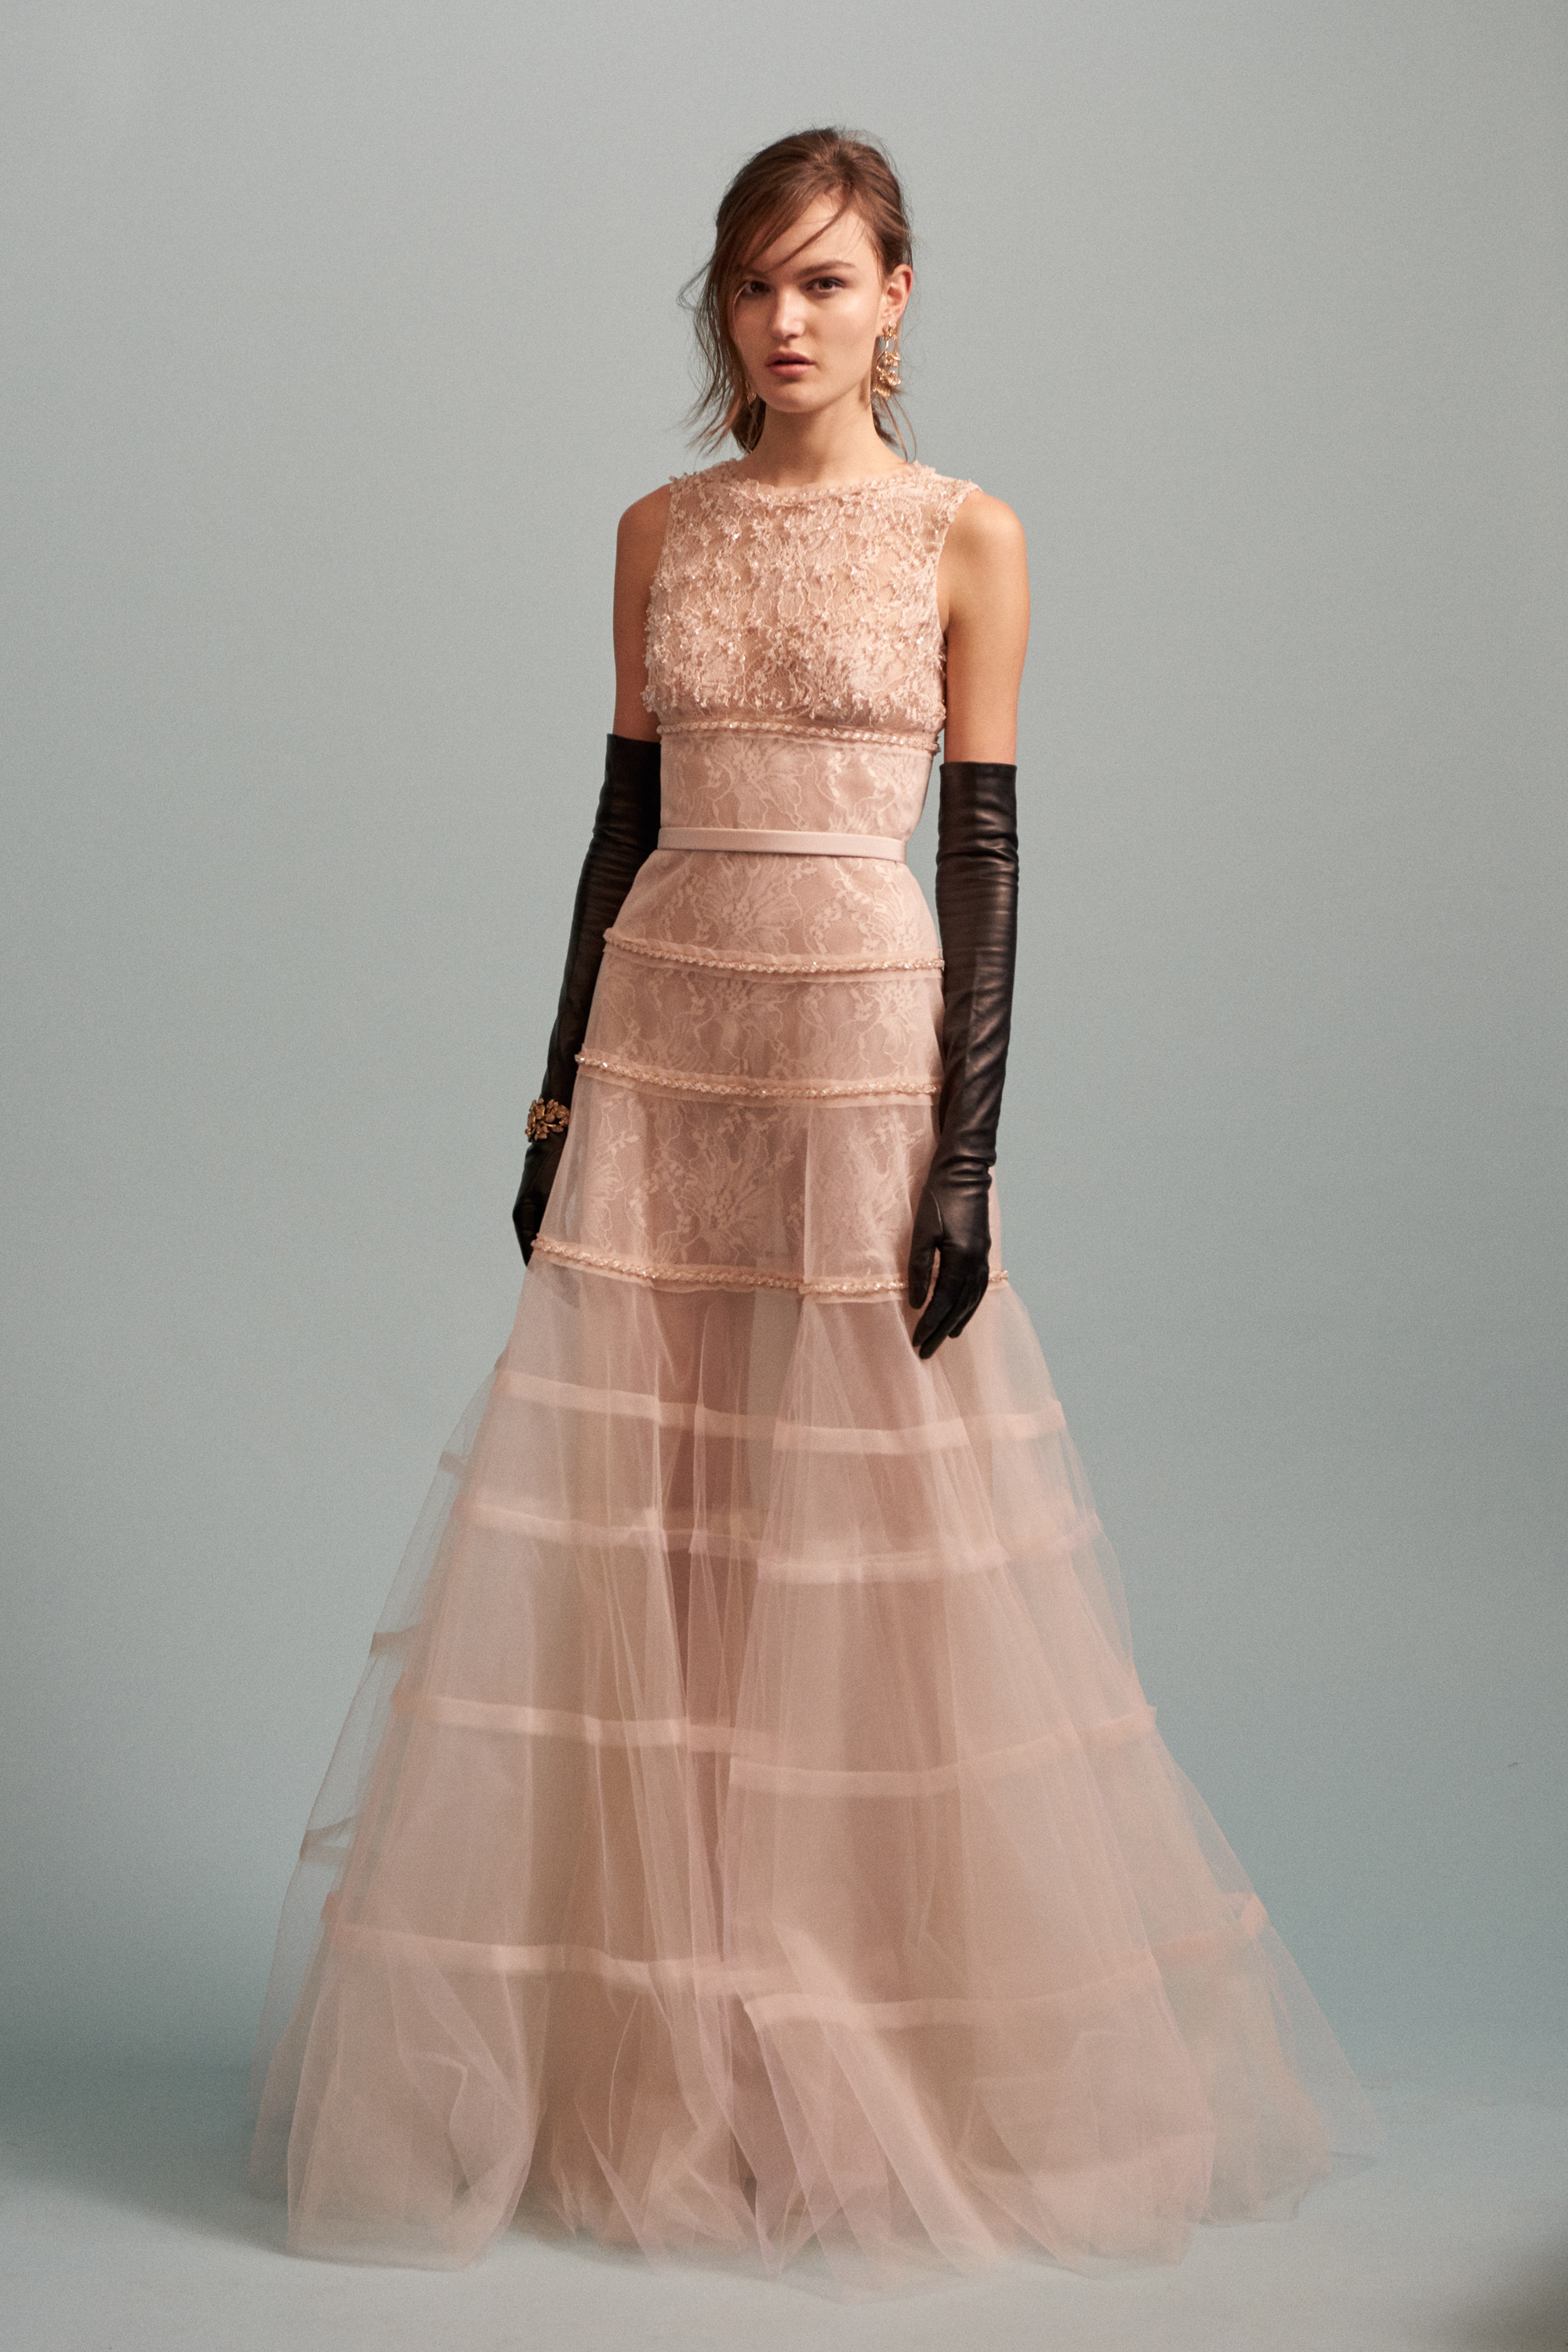 28 Pre-Wedding Party Dresses from Pre-Fall 2016